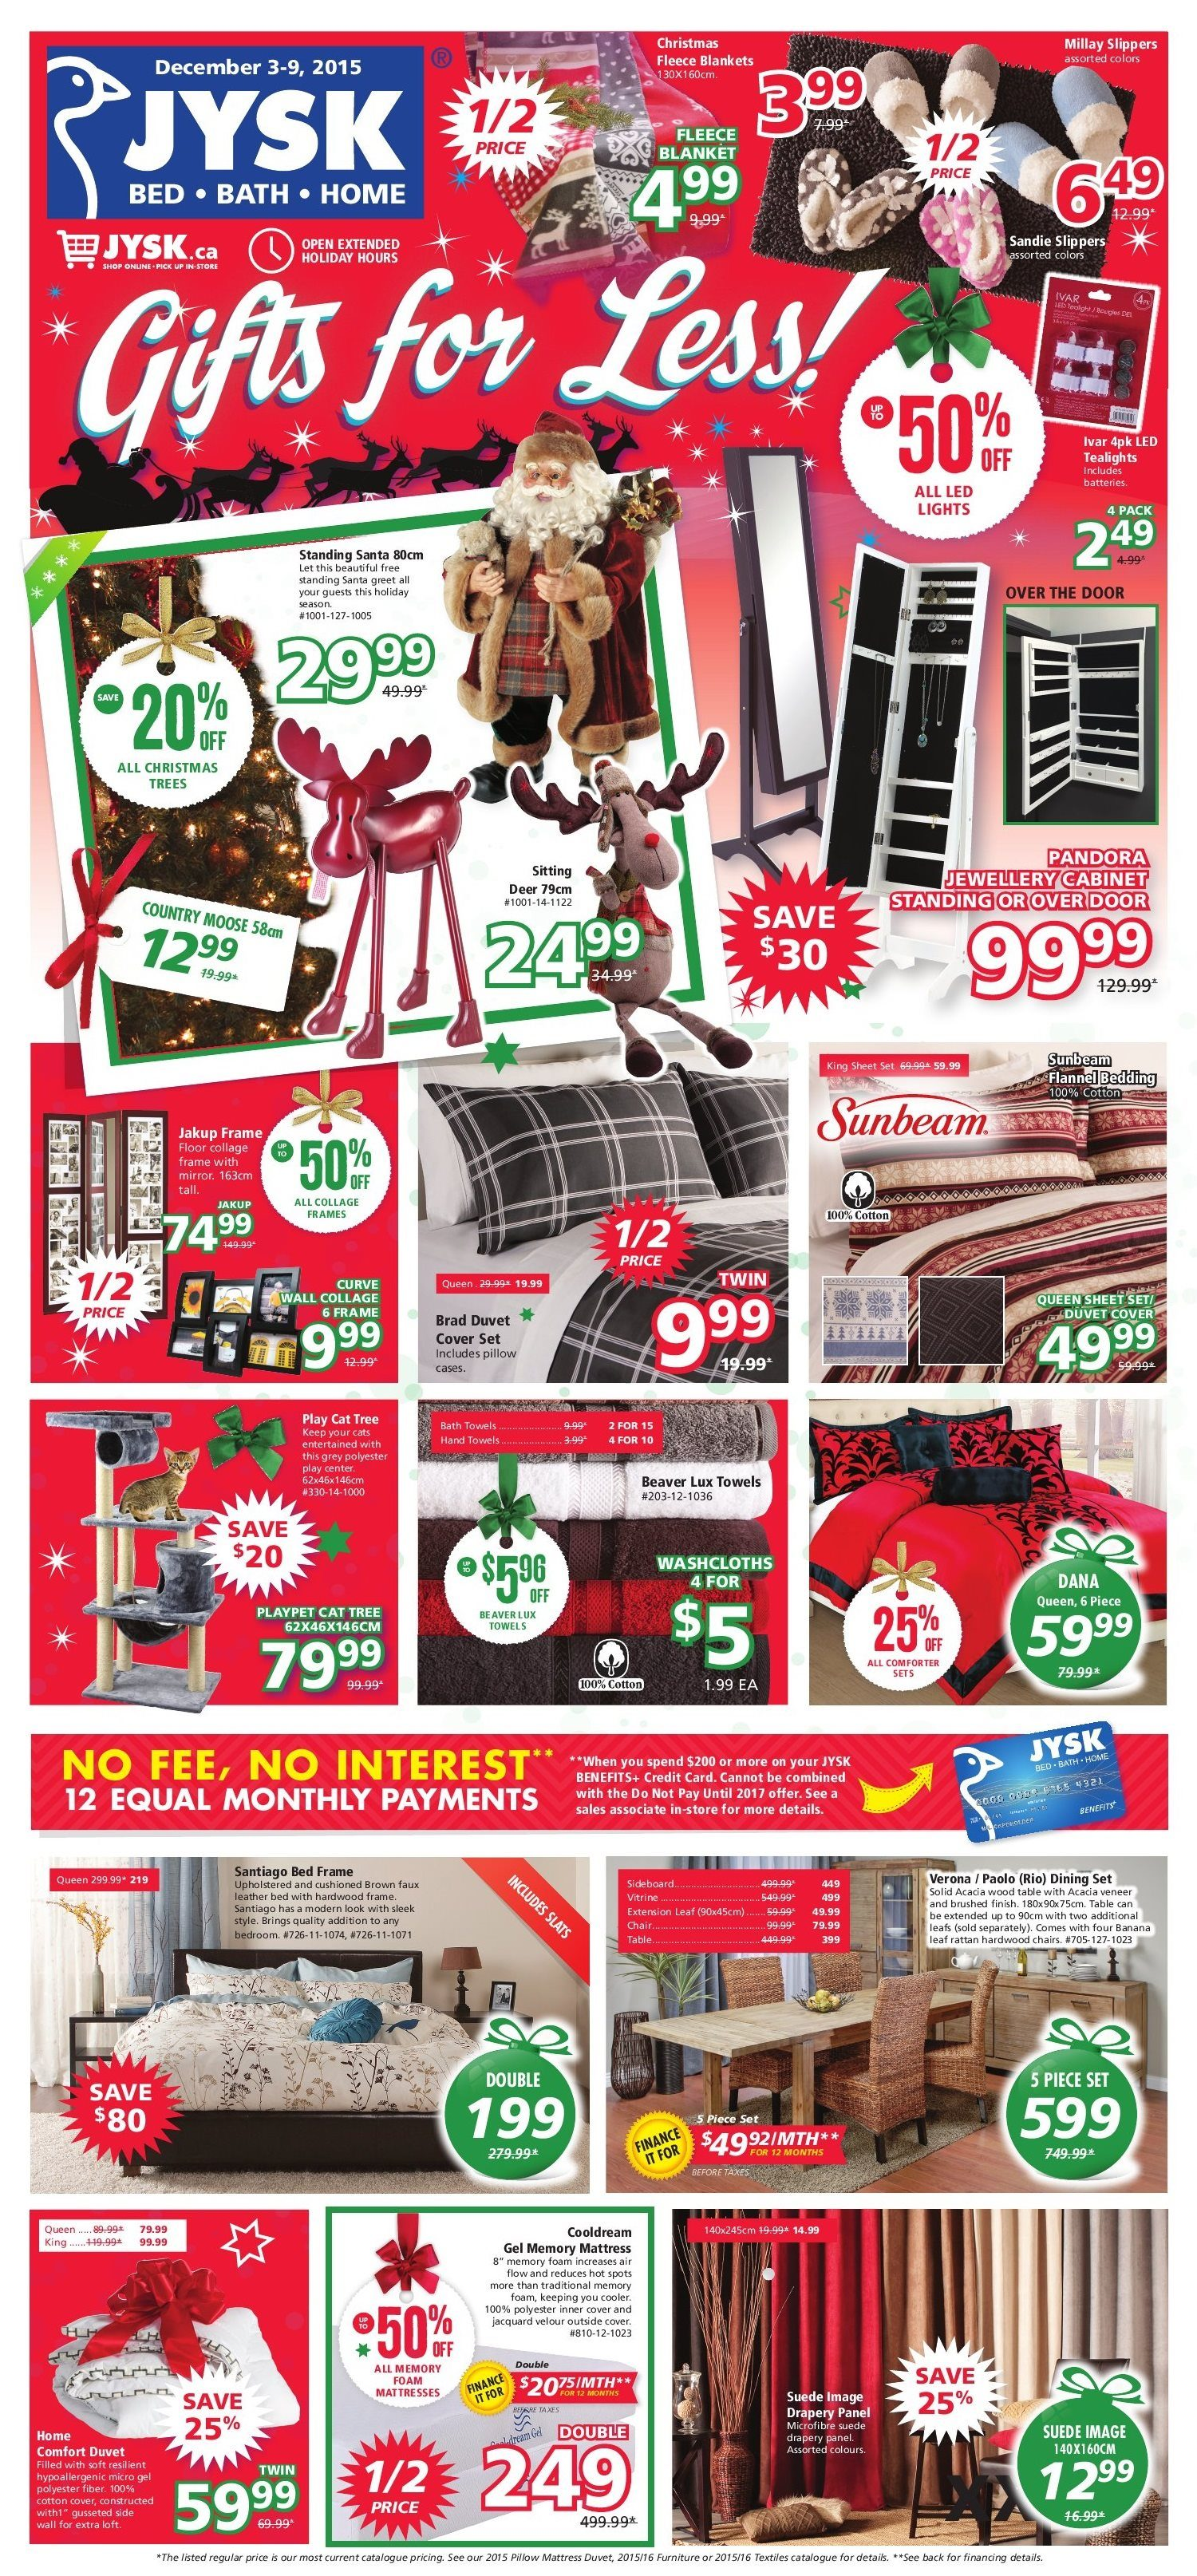 JYSK Weekly Flyer Weekly Gifts for Less Dec 3 – 9